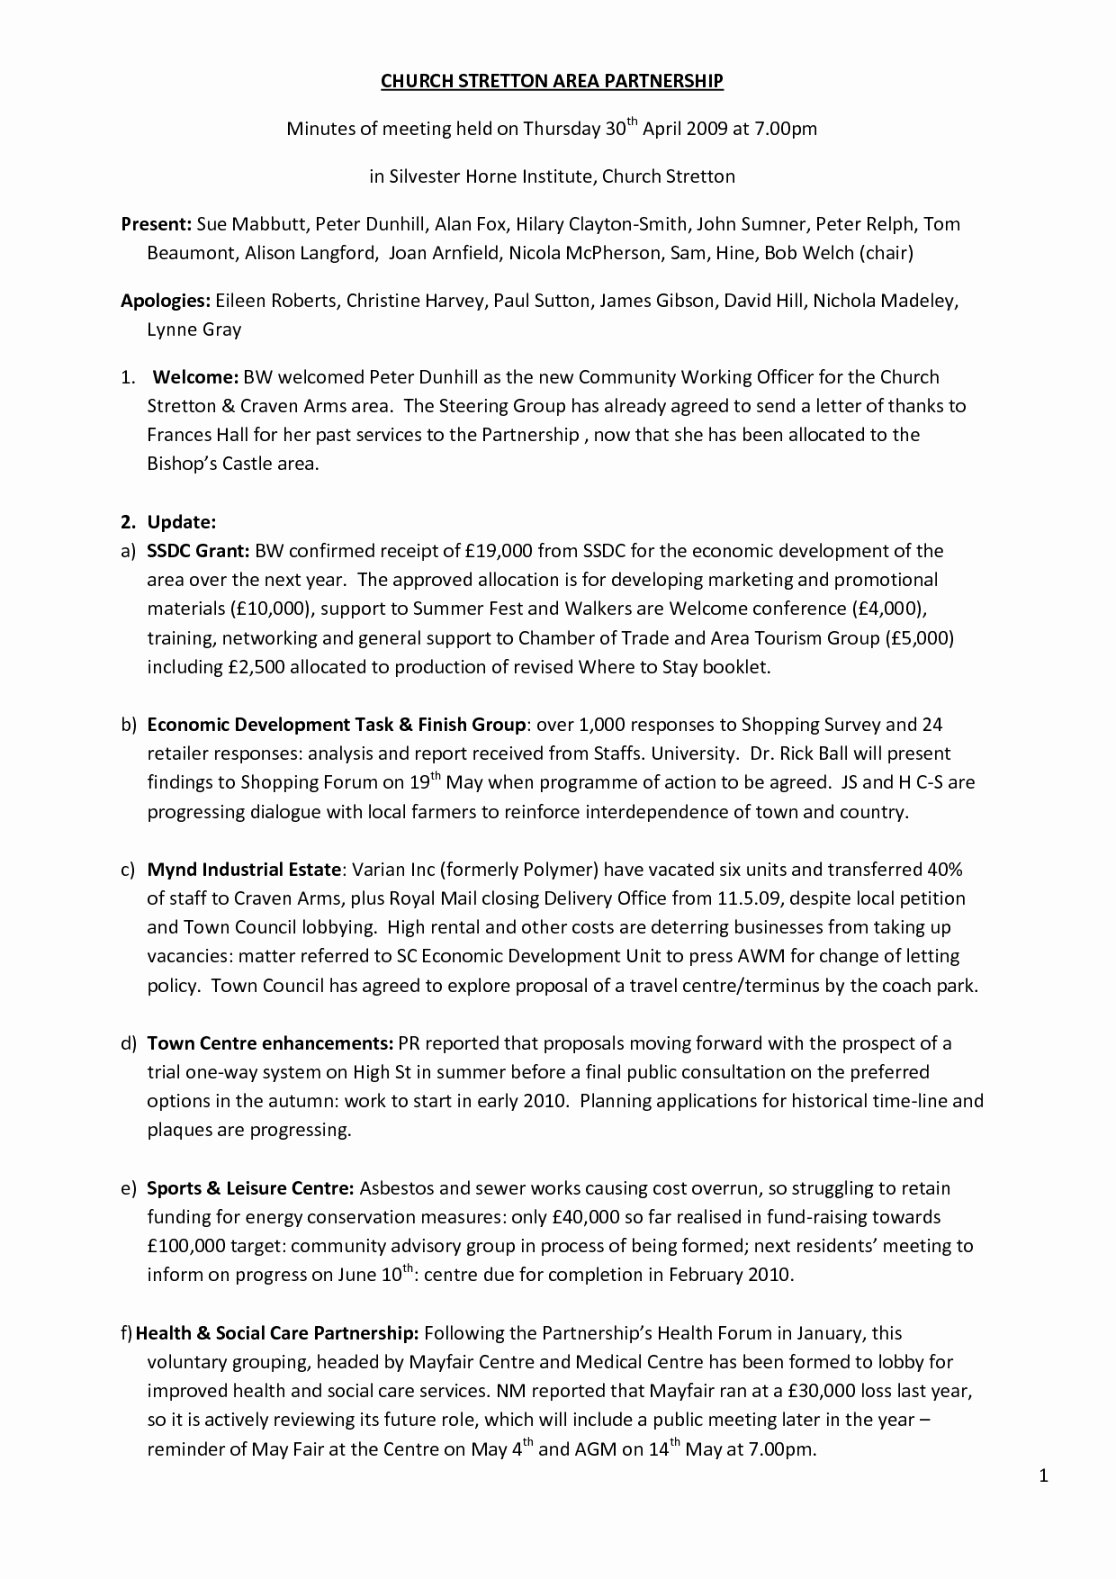 Church Business Meeting Minutes Template New Church Business Meeting Minutes Template